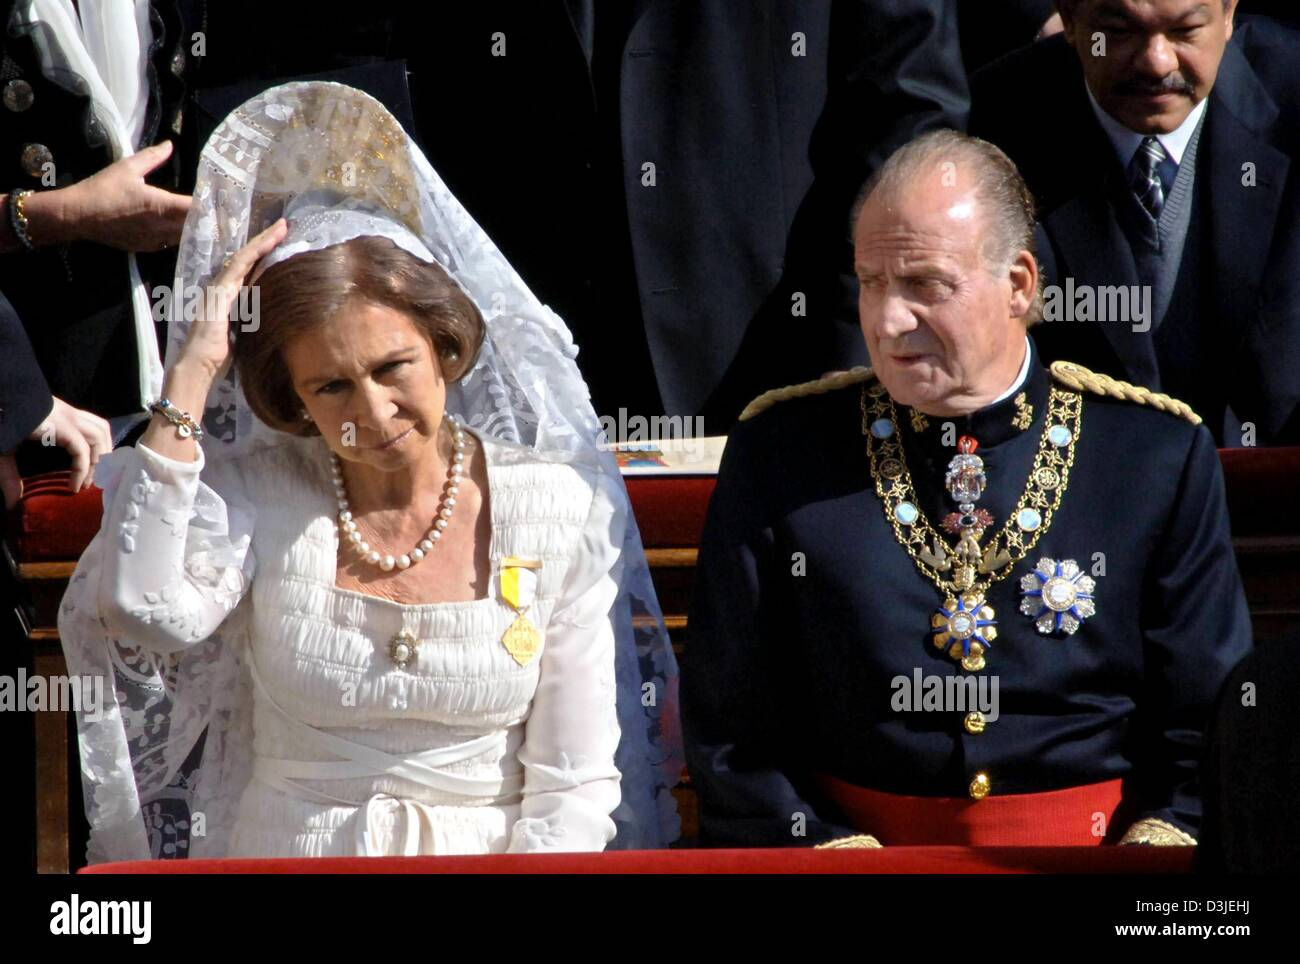 (dpa) - King Juan Carlos of Spain and his wife Queen Sophia take part in the church service on St Peter's SquareStock Photo